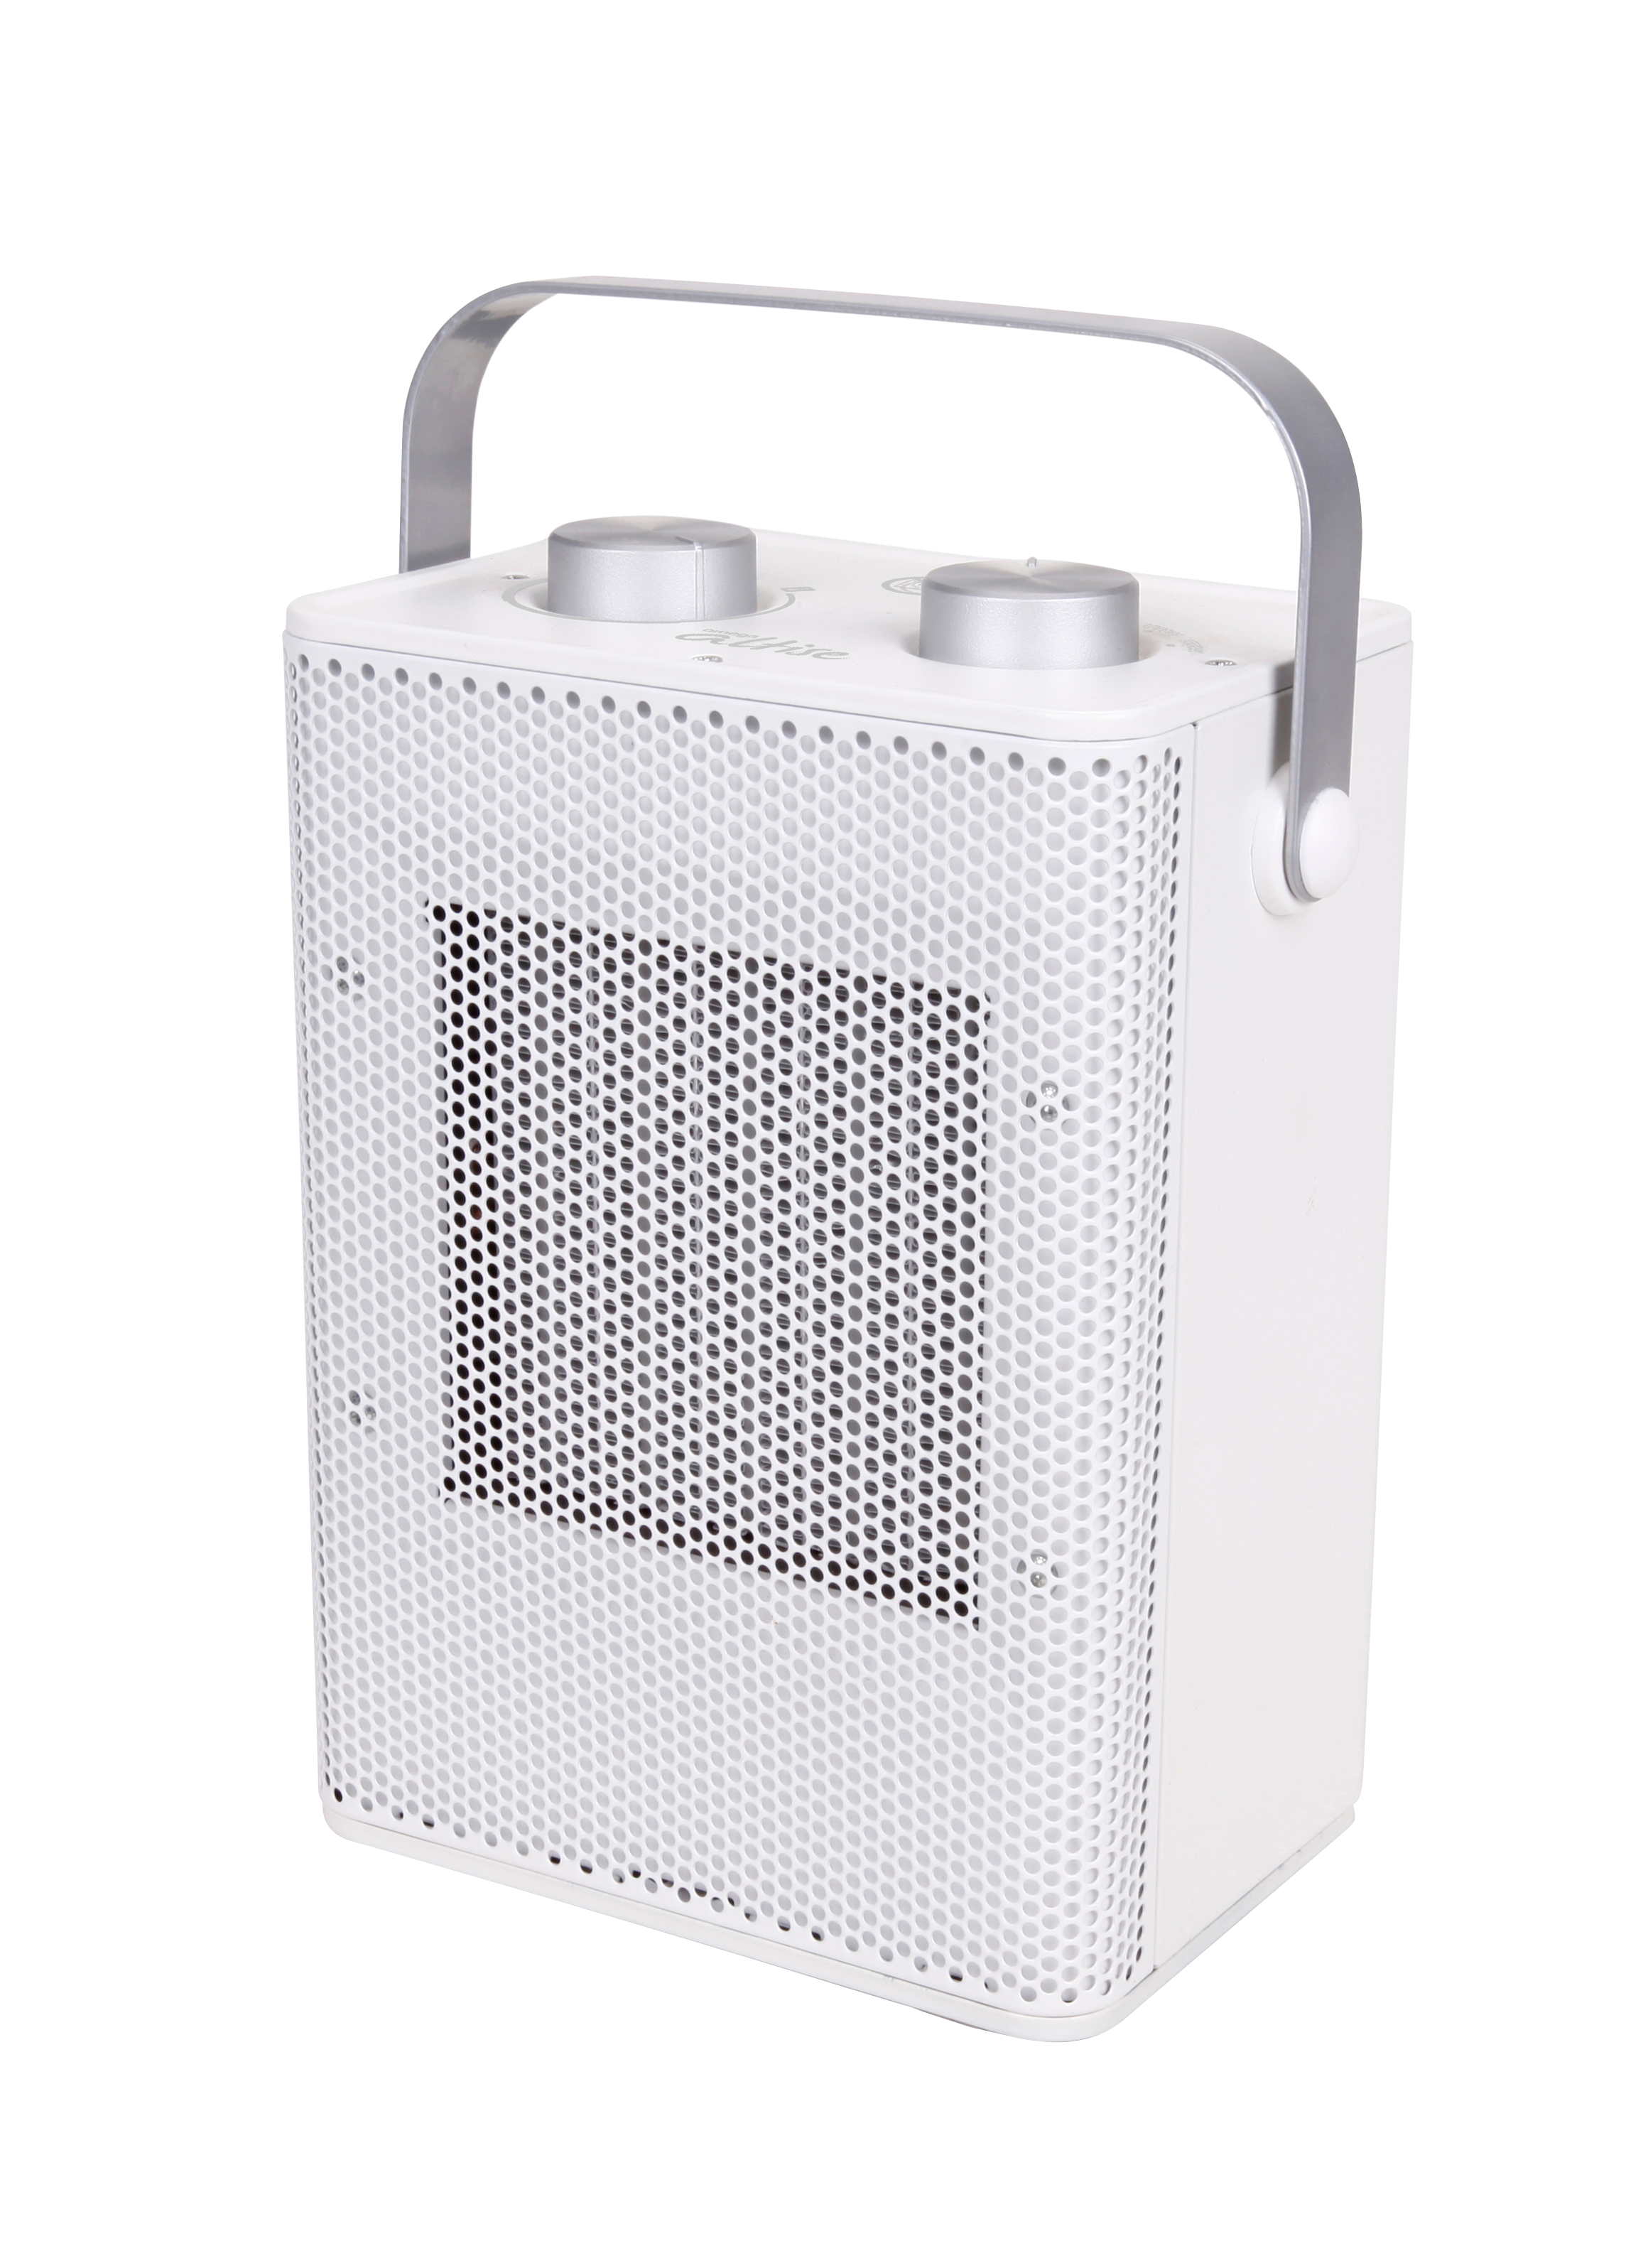 Omega Altise Product Portable Ceramic Heater - White (OACHM15W)